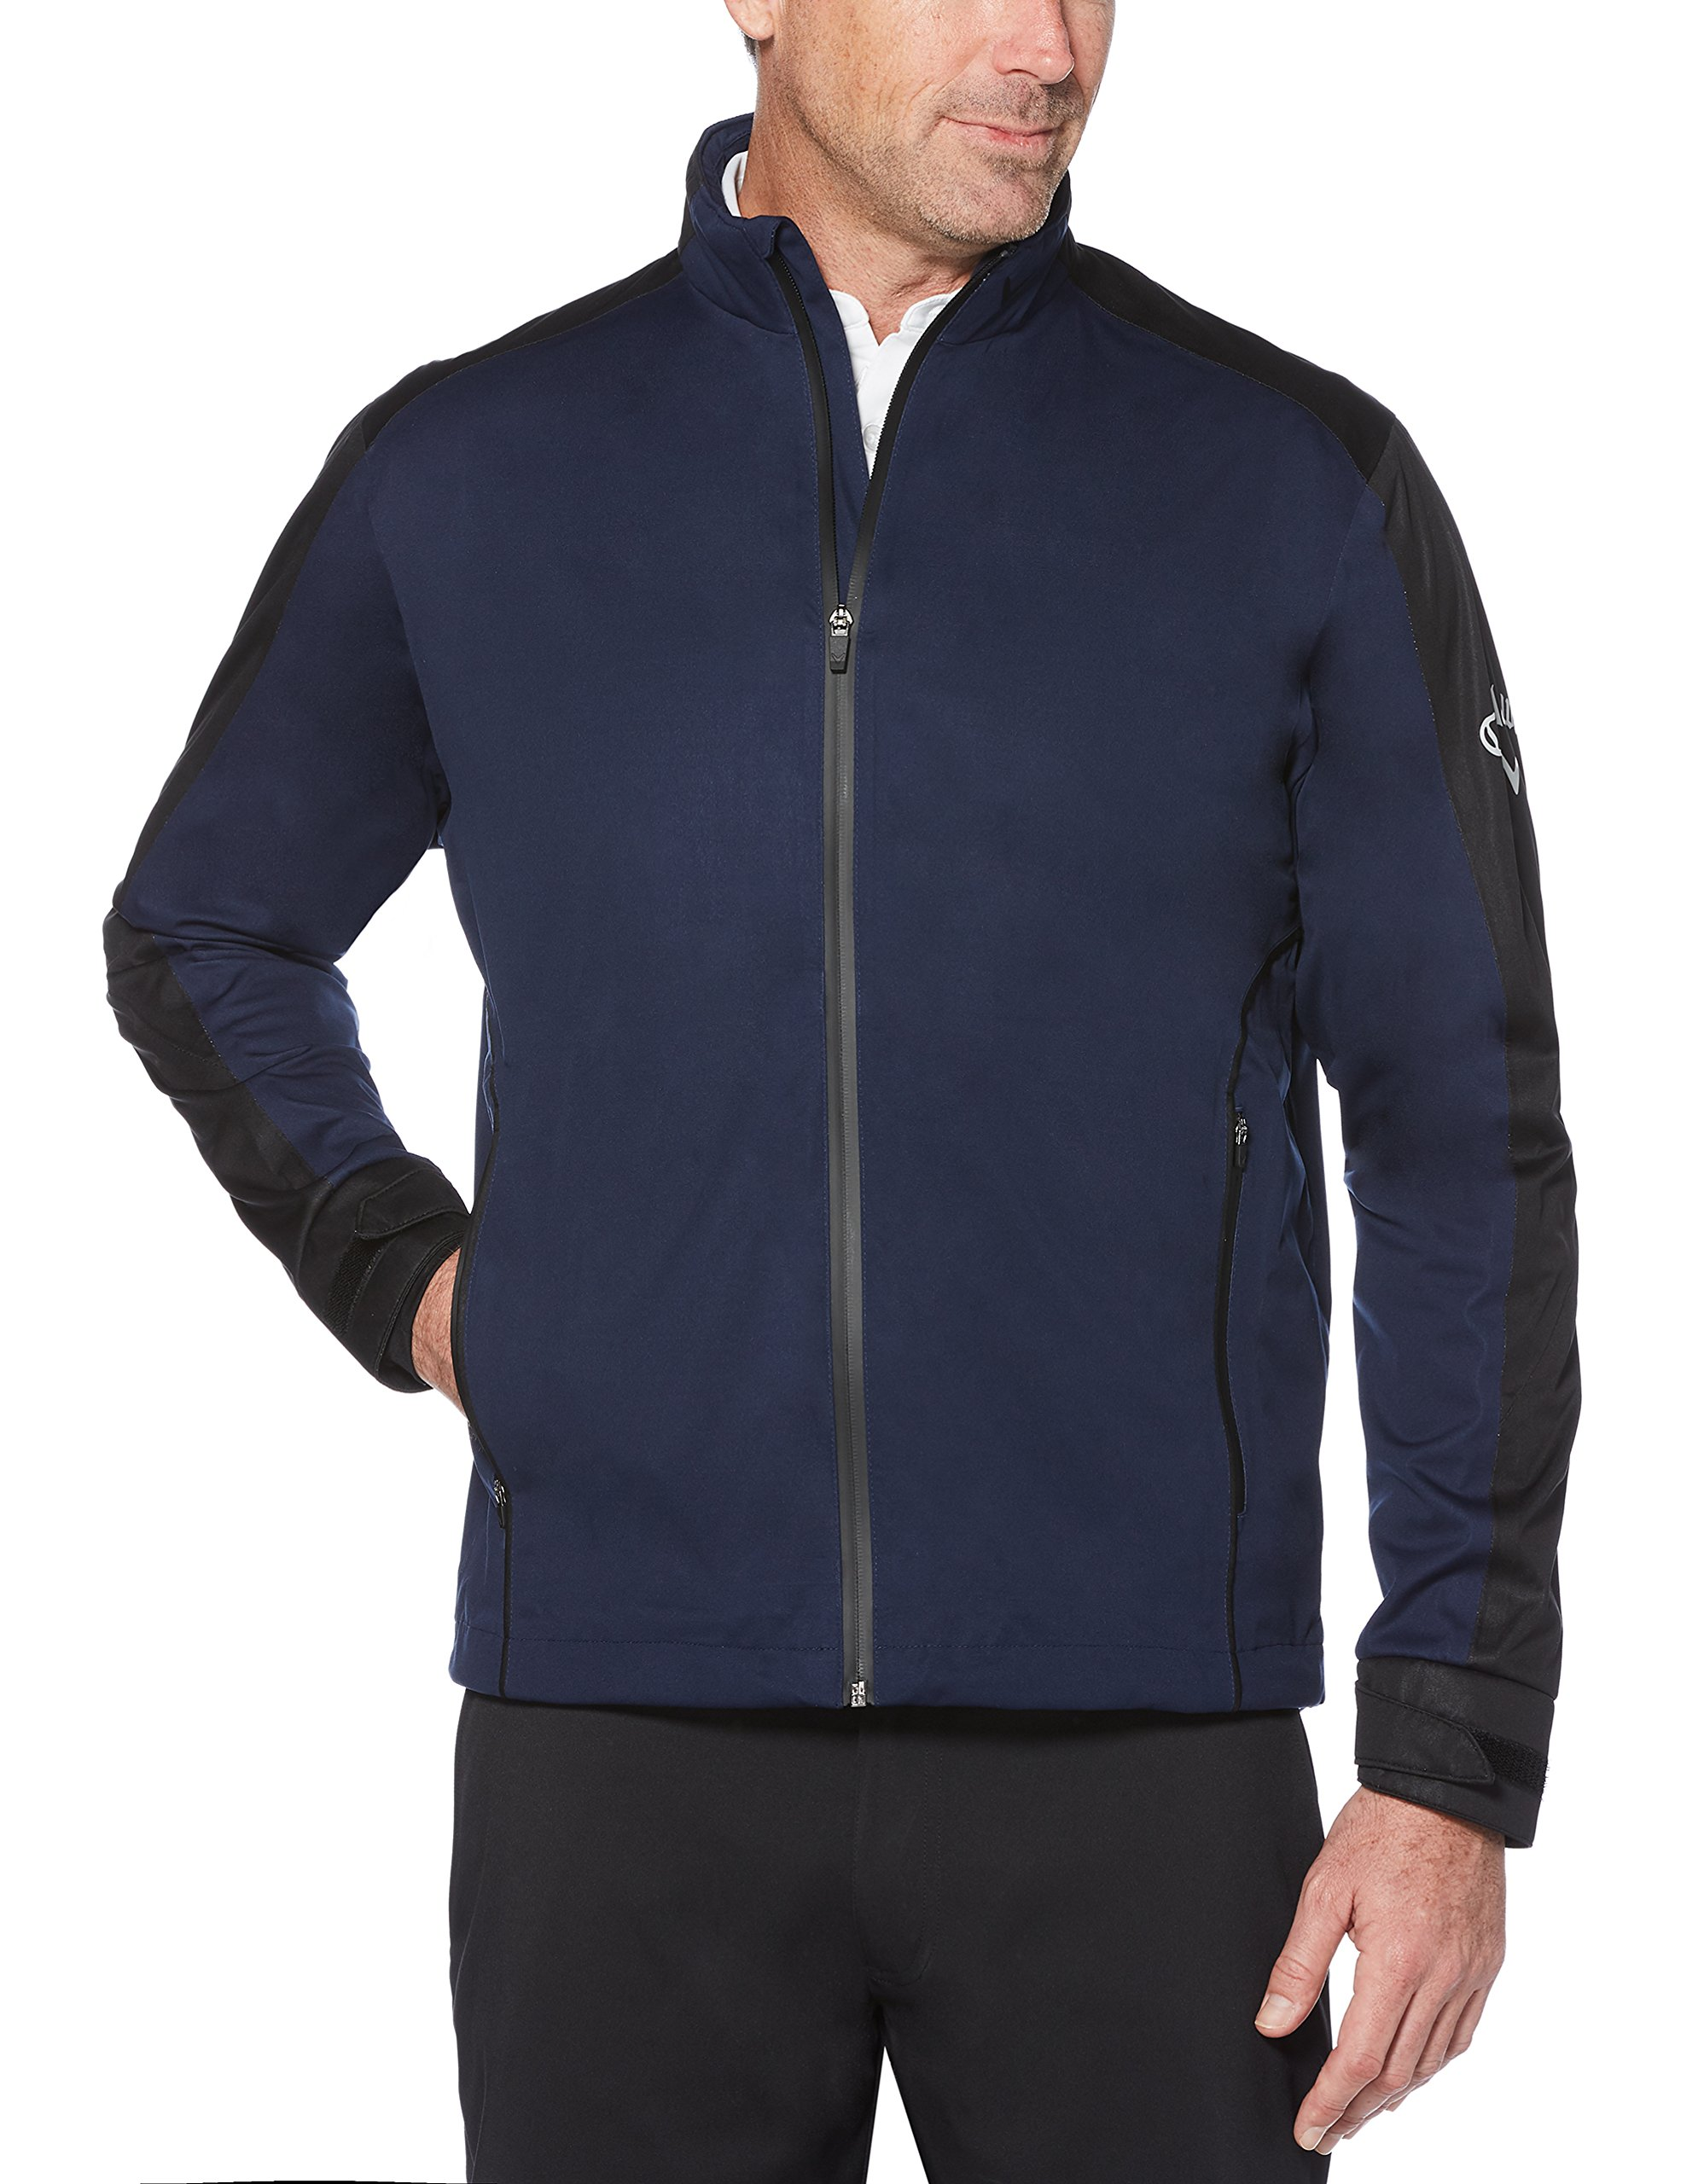 Callaway Men's Waterproof Full-zip Golf Jacket, Peacoat, Large by Callaway